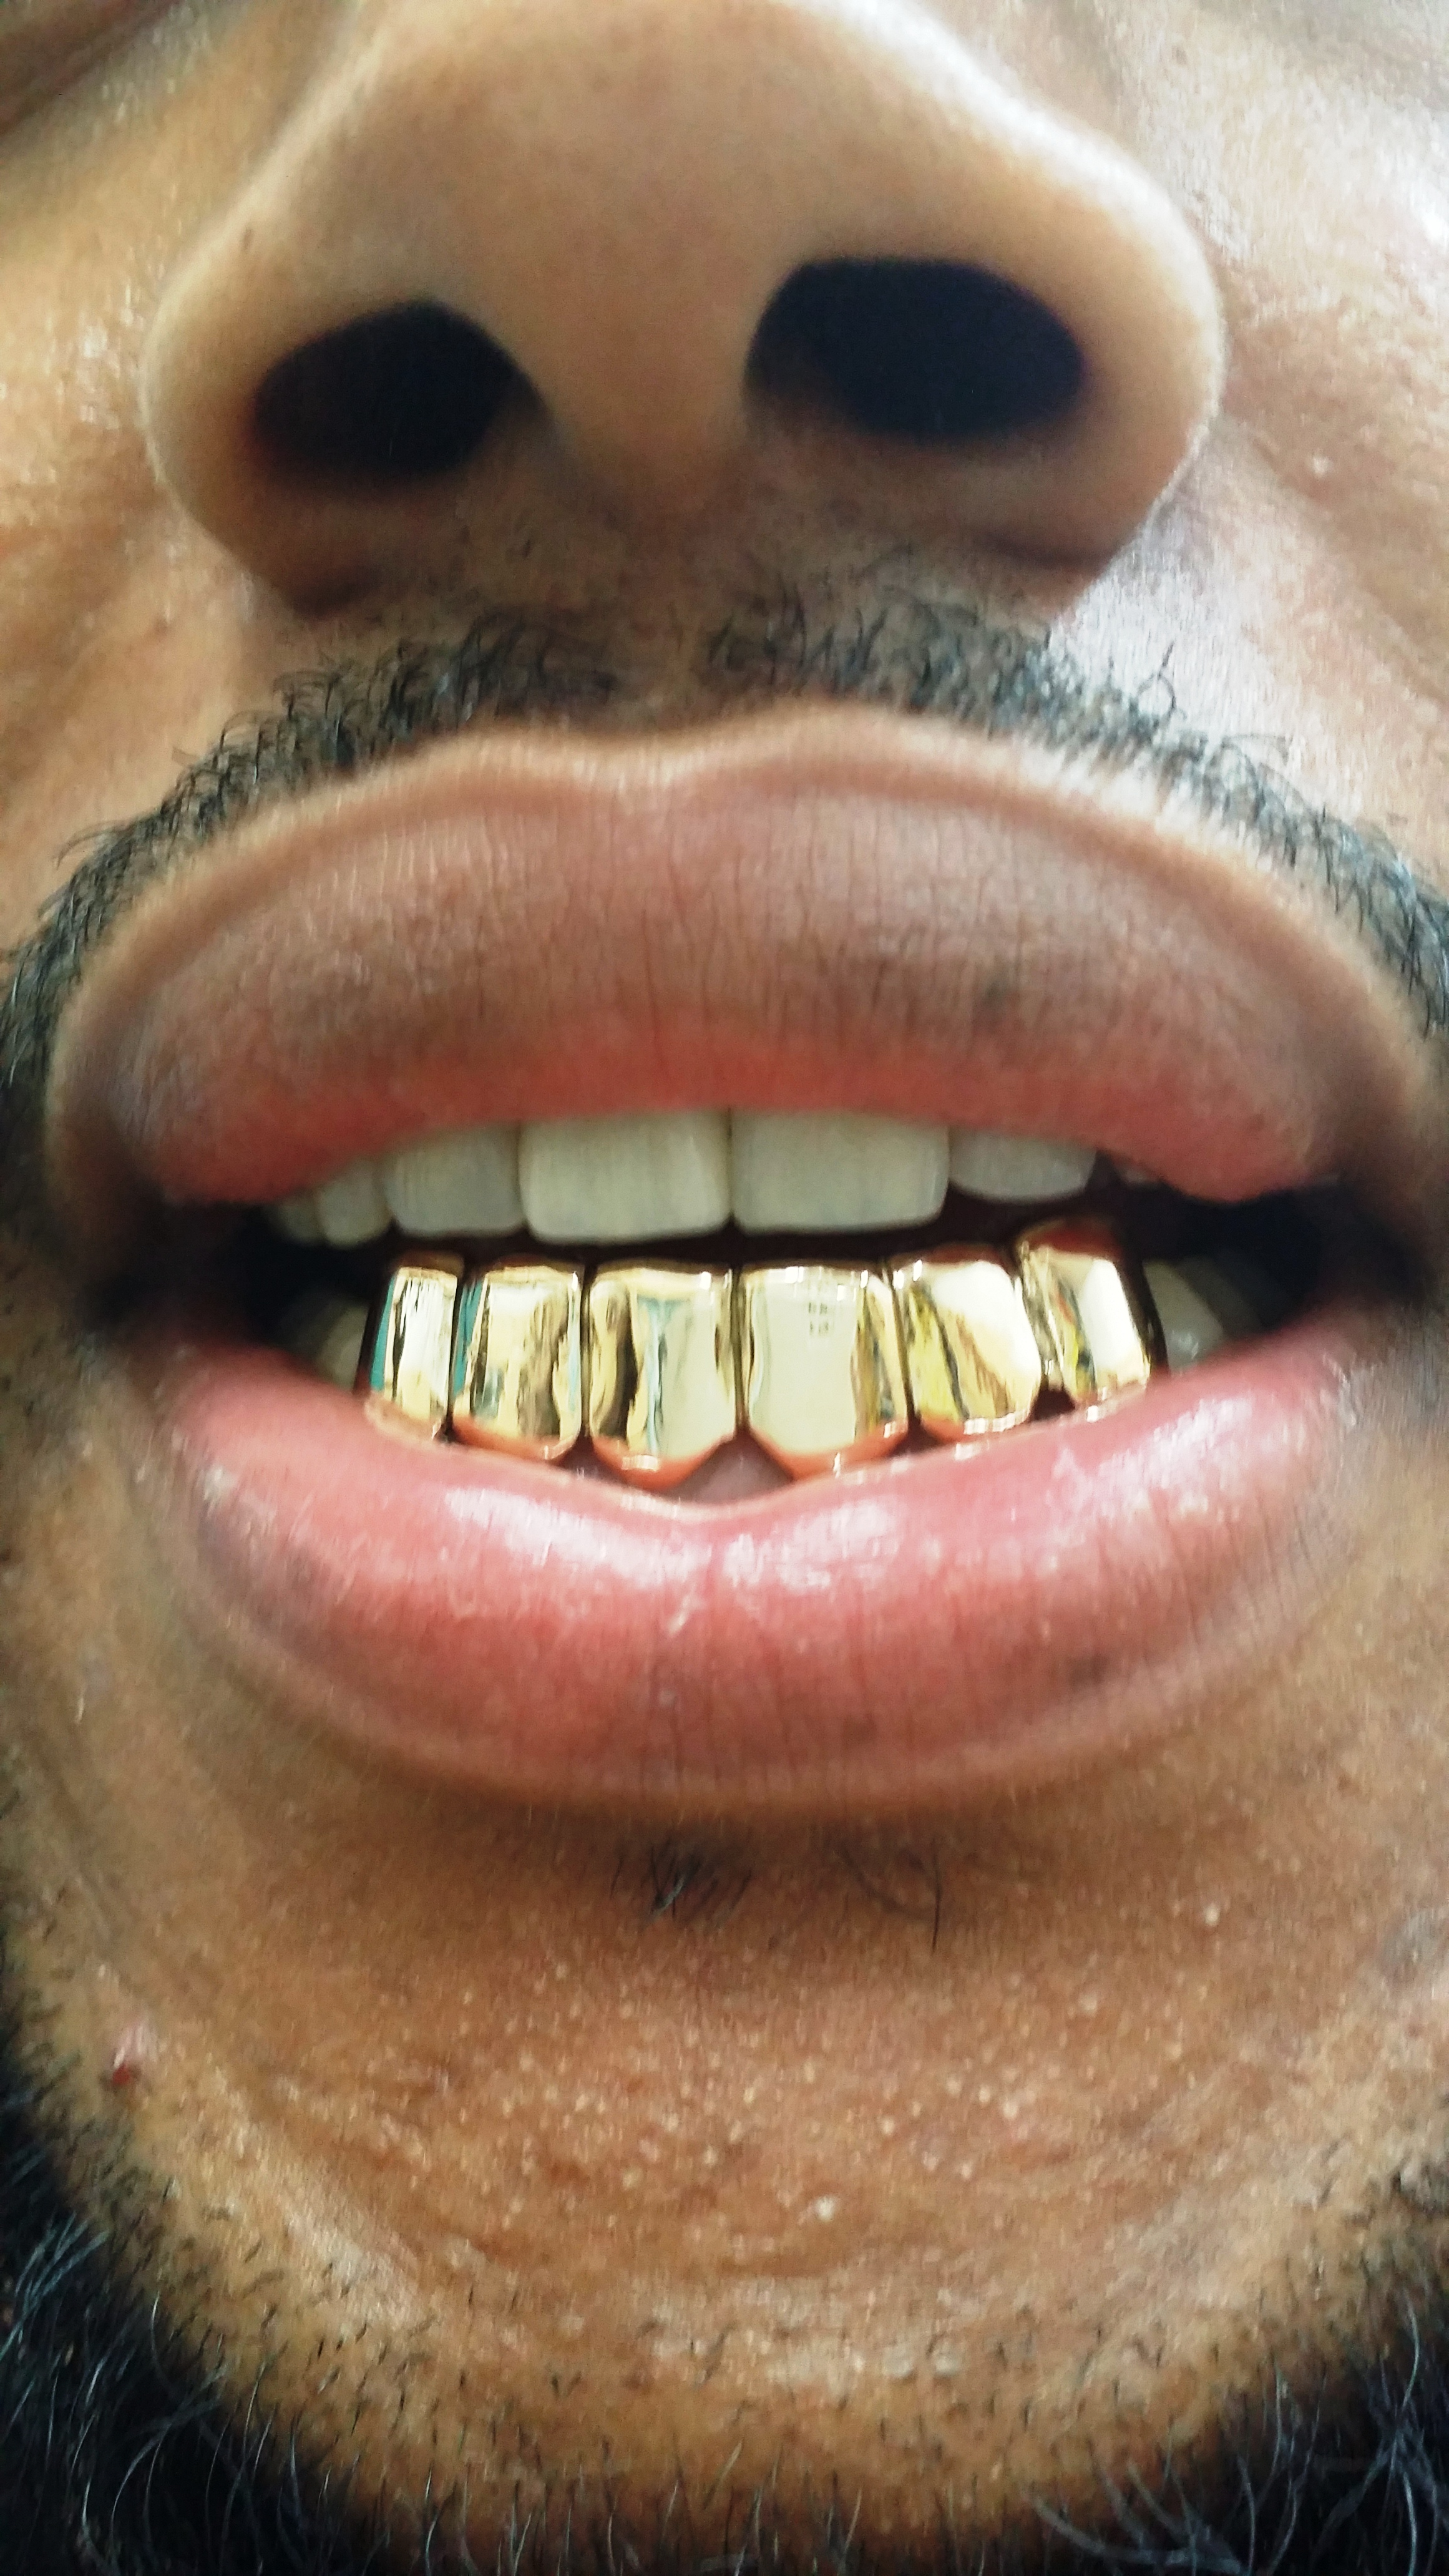 The fashion vampires with gold teeth 94